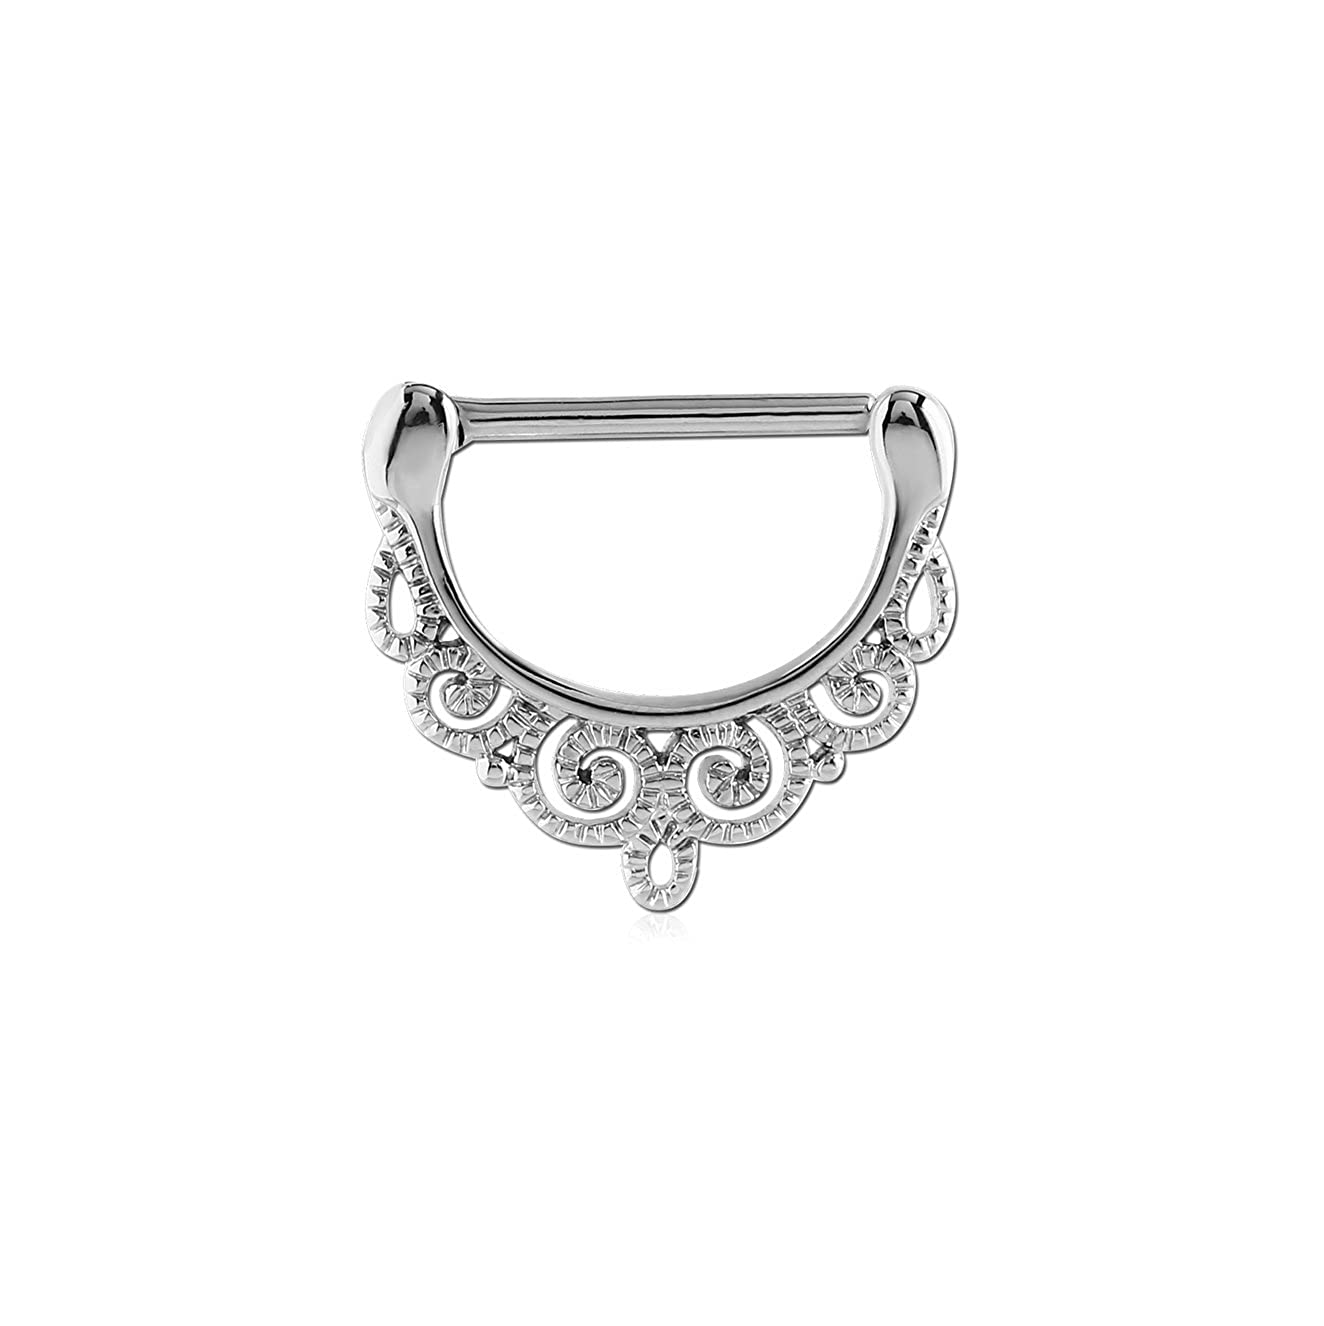 Bubble Body Piercing 1 Piece, not a Pair Surgical Steel Nipple Clicker - Filigree Gauge: 14g